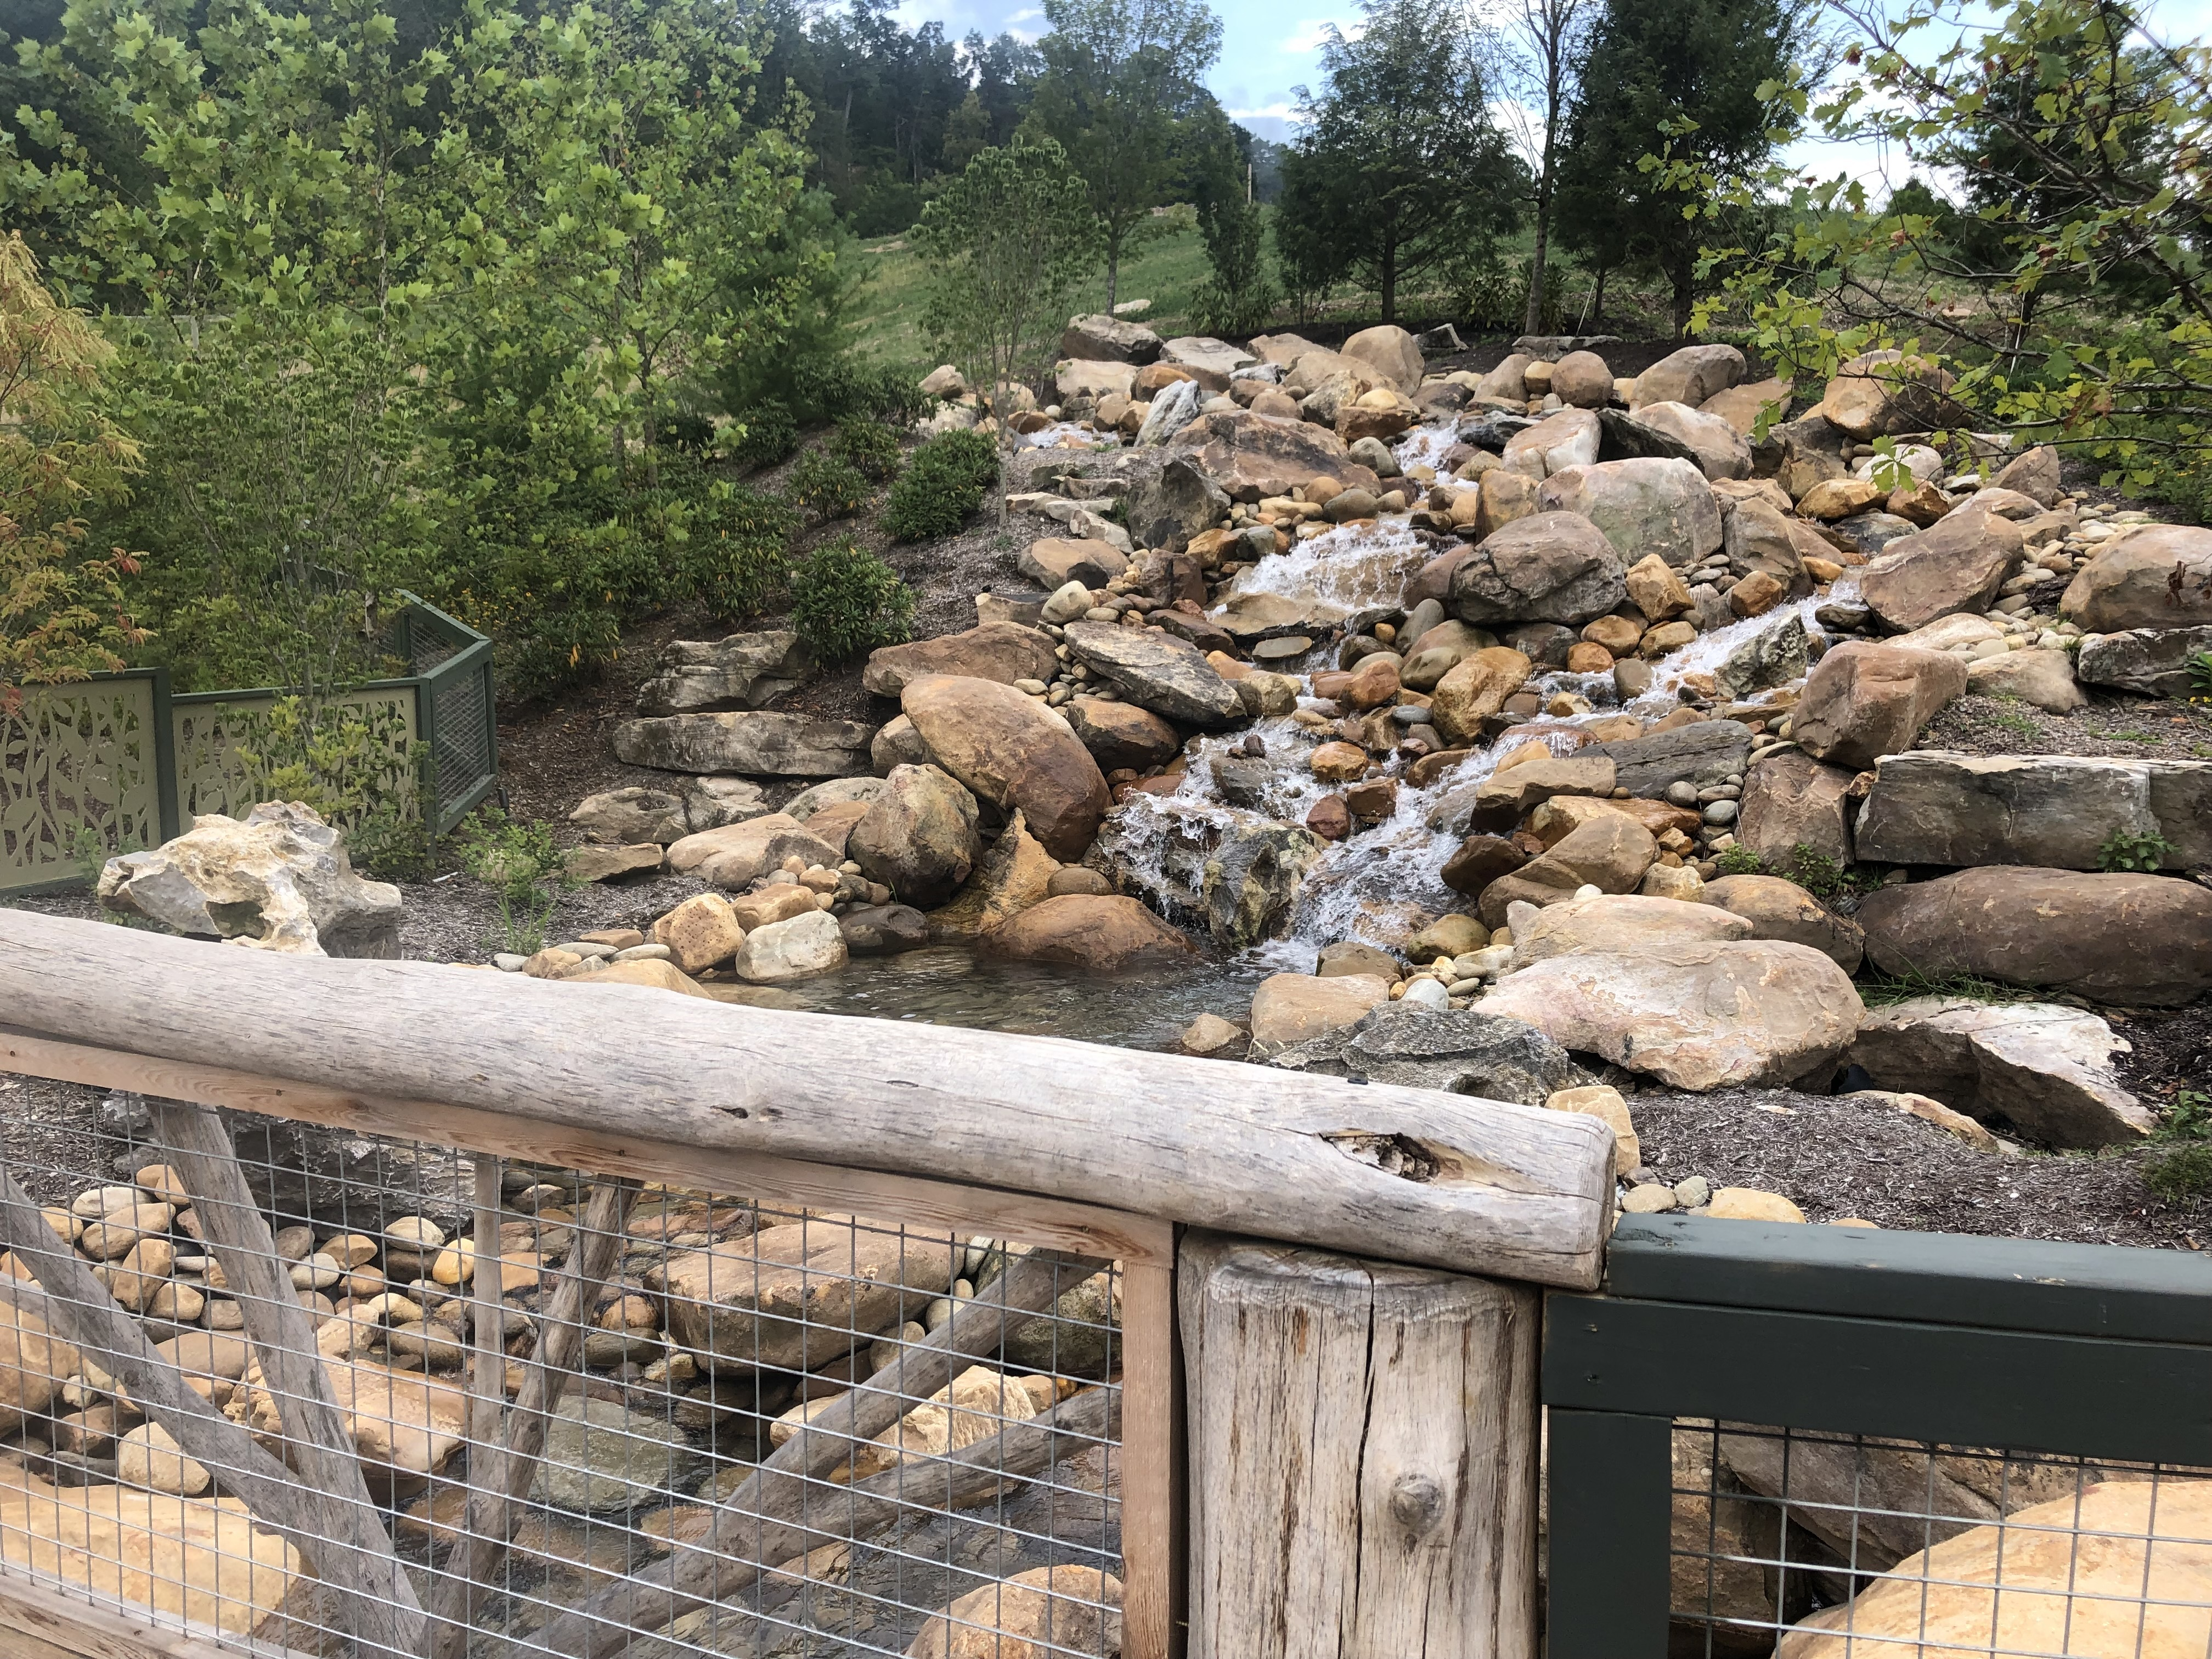 Wildwood Creek at Dollywood is inspired by Roaring Fork Motor Nature Trail